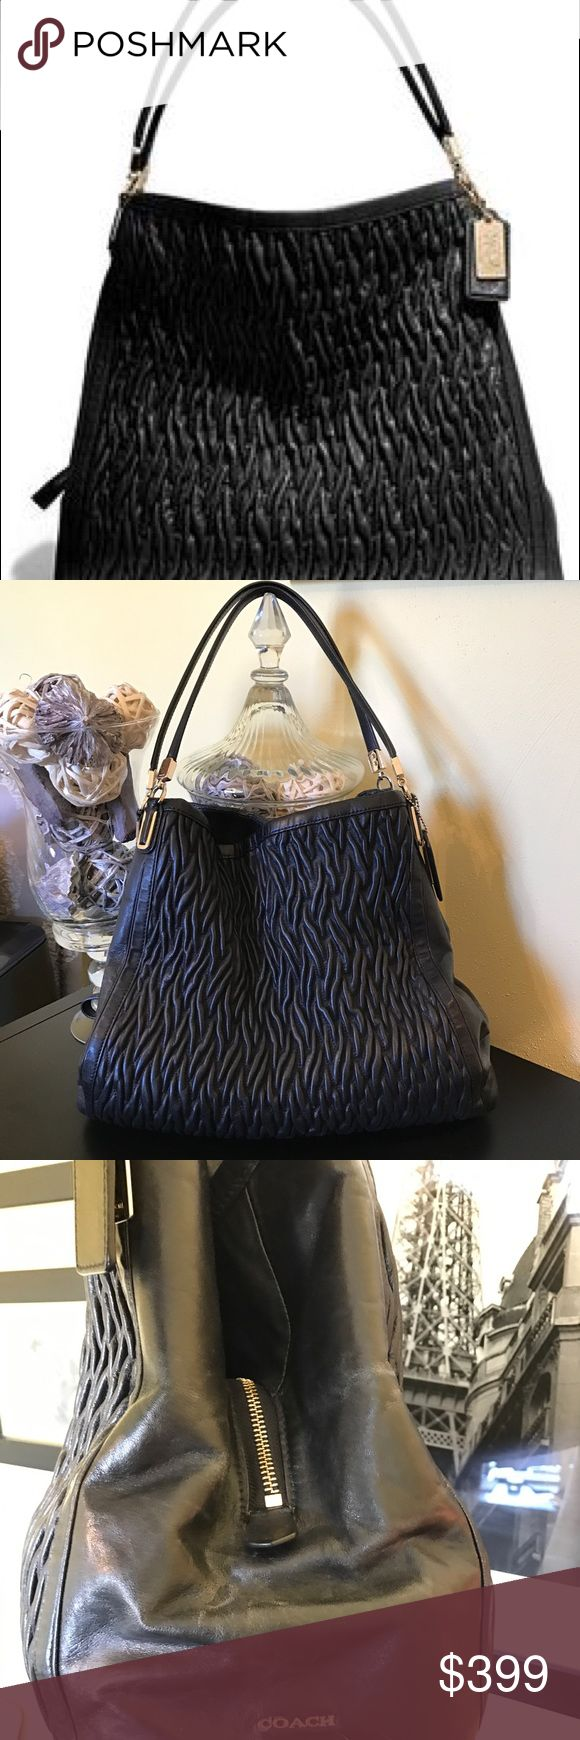 Coach Madison Twister Black Leather Hobo In EUC this Coach bag is lined in dark purple satin, and has 3 separate compartments. The center compartment zips and the exterior 2 snap shut magnetically.  Beautiful soft black leather with gold hardware make this an excellent work bag. Comes from a Pet Free and Smoke Free home. Coach Bags Hobos